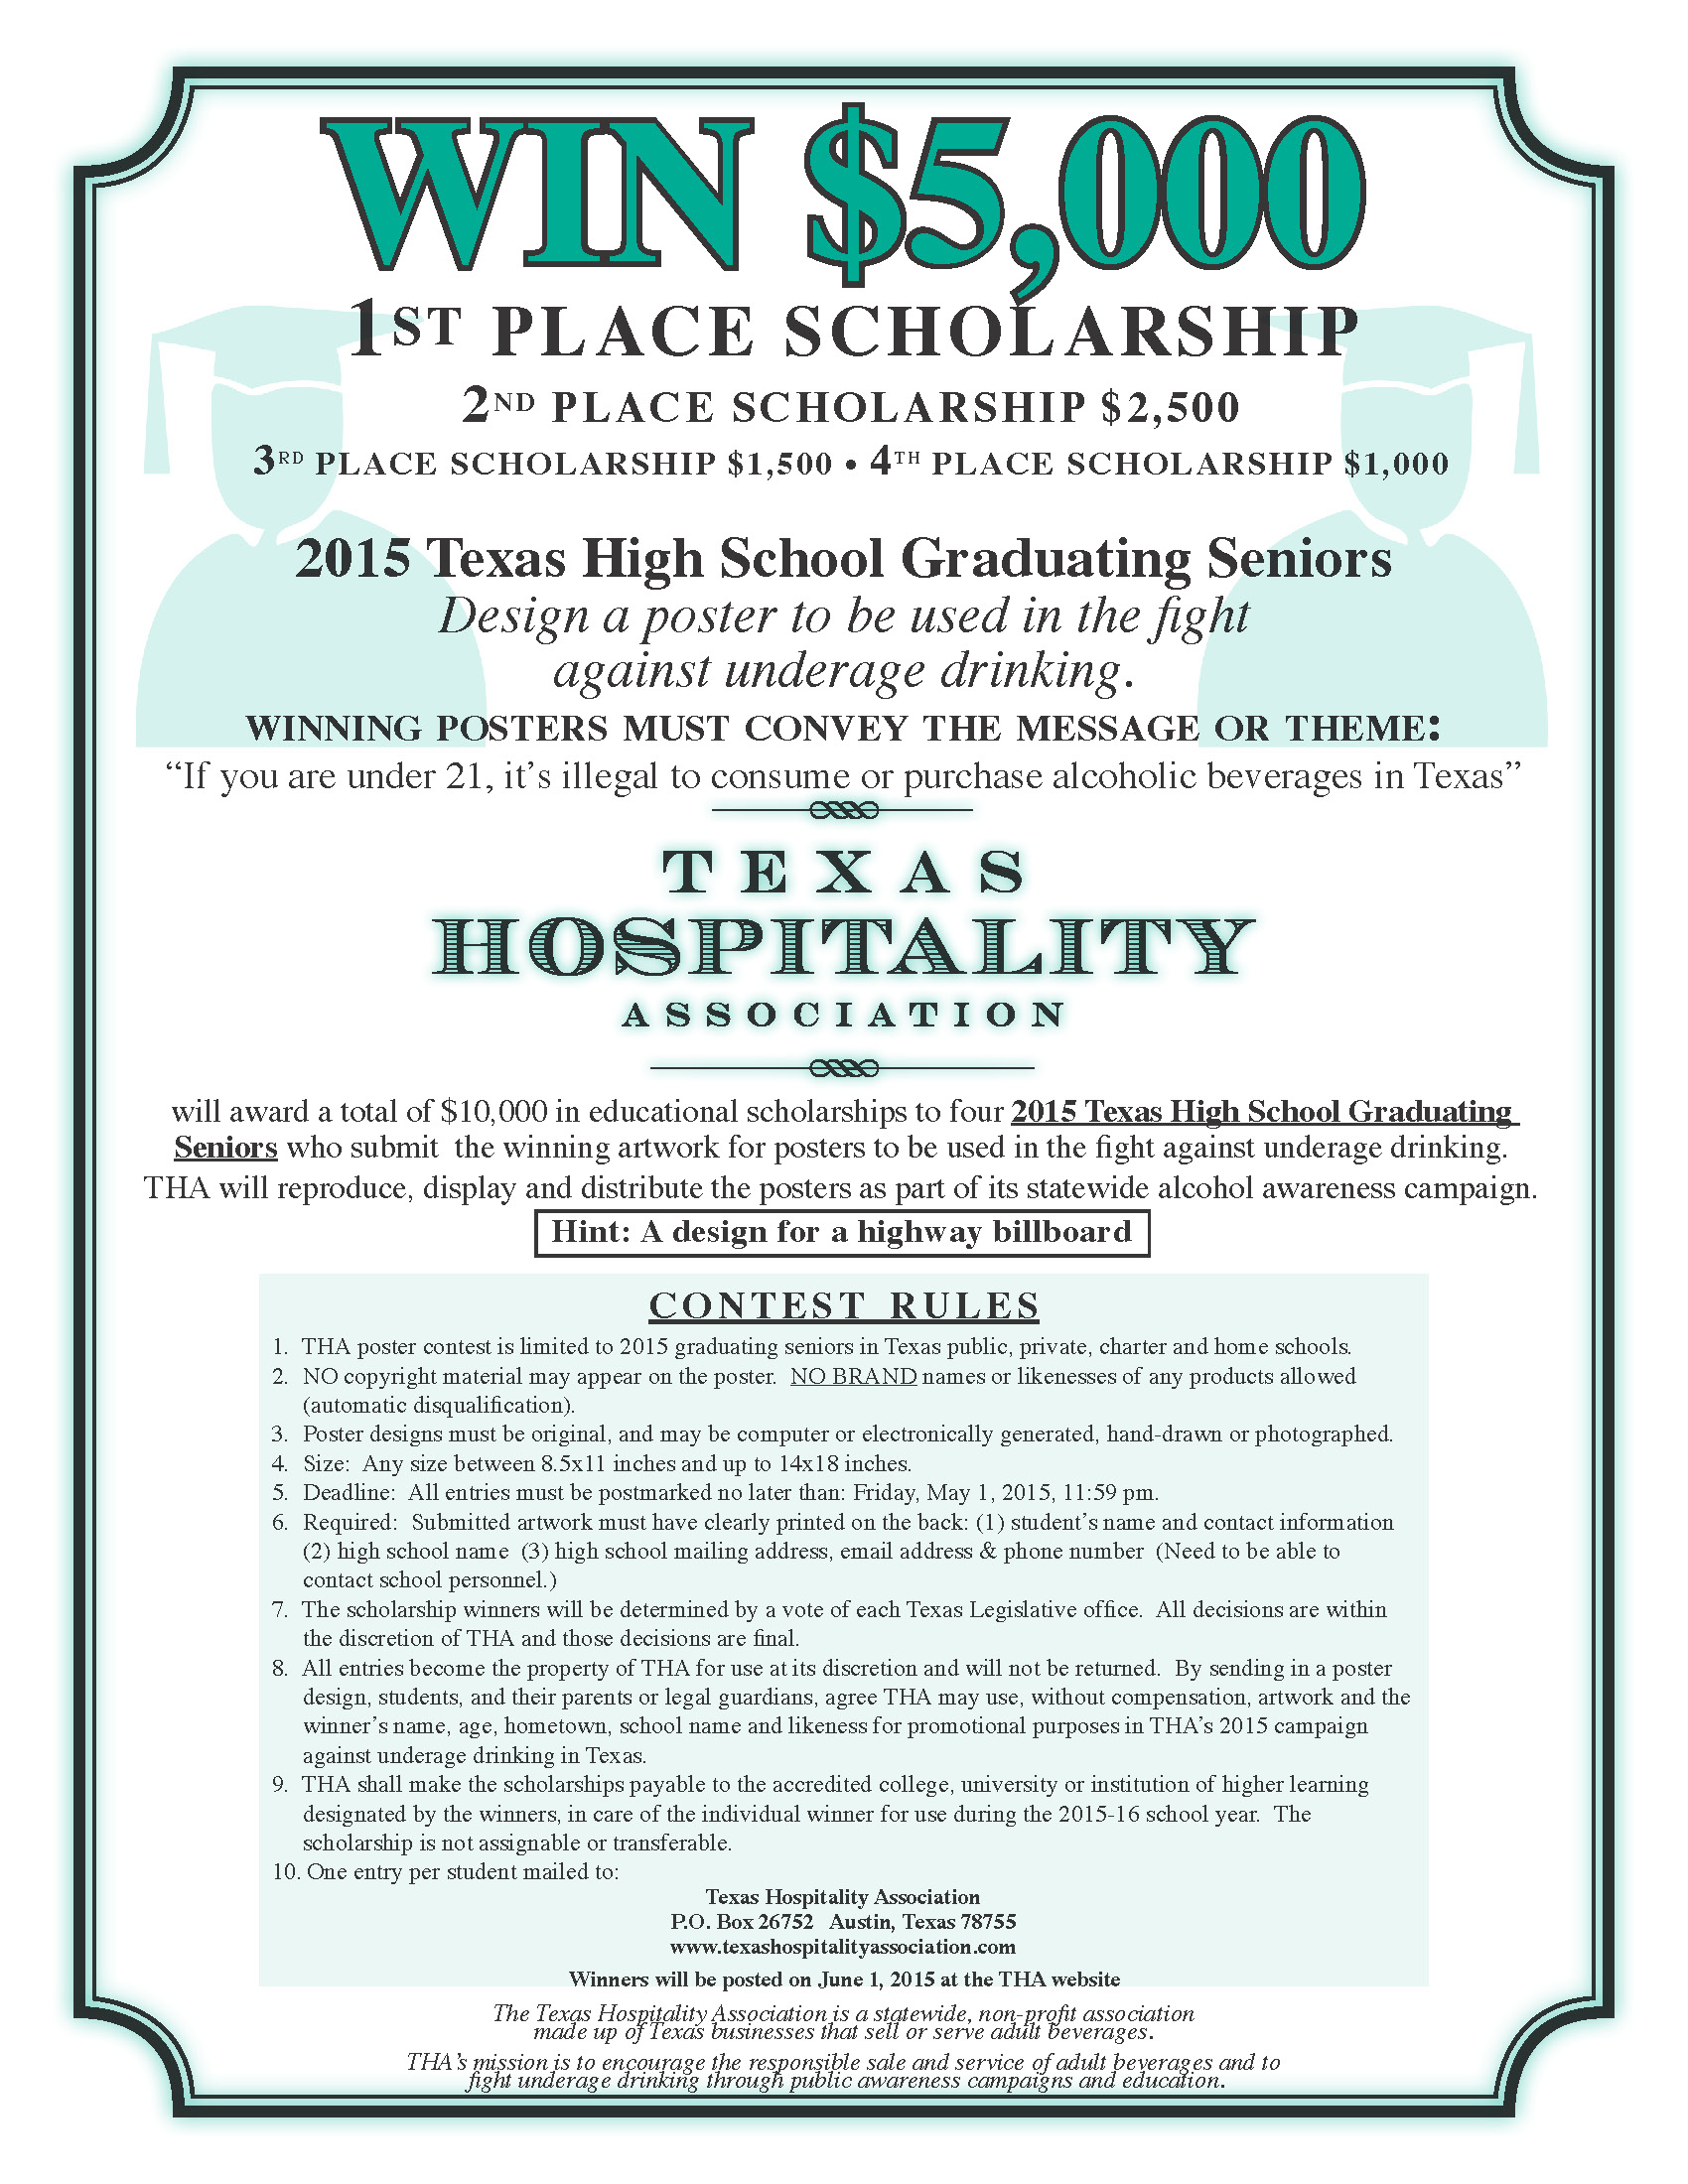 no essay scholarships for high school seniors 2015 2018 scholarships for high school seniors does your mom or dad work for a company that sponsors scholarships for students who essays – write carefully.